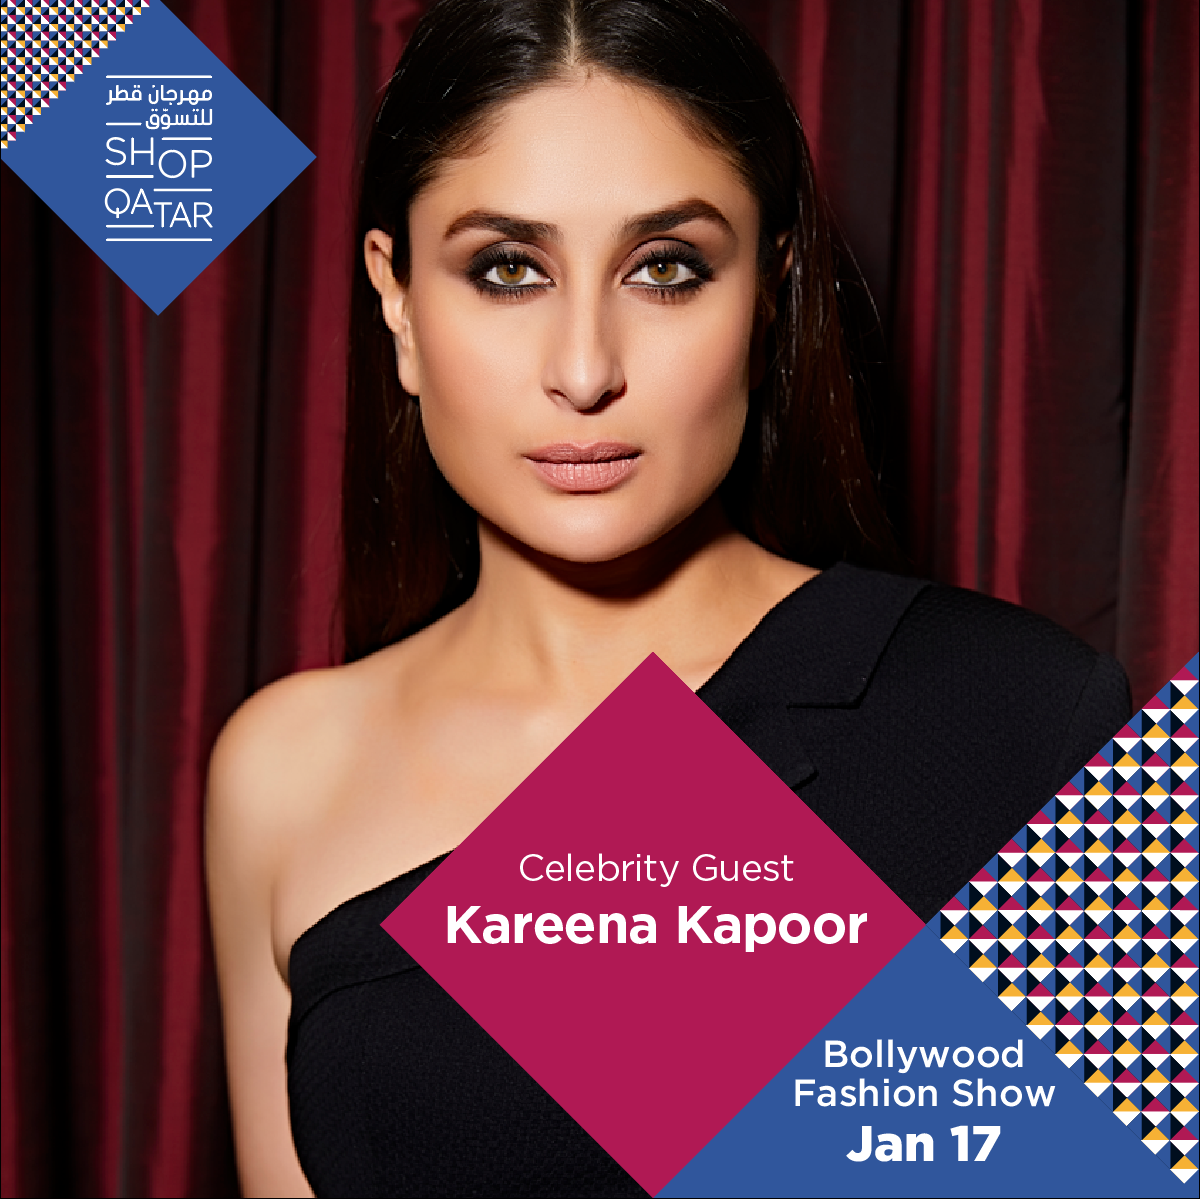 Kareena revised